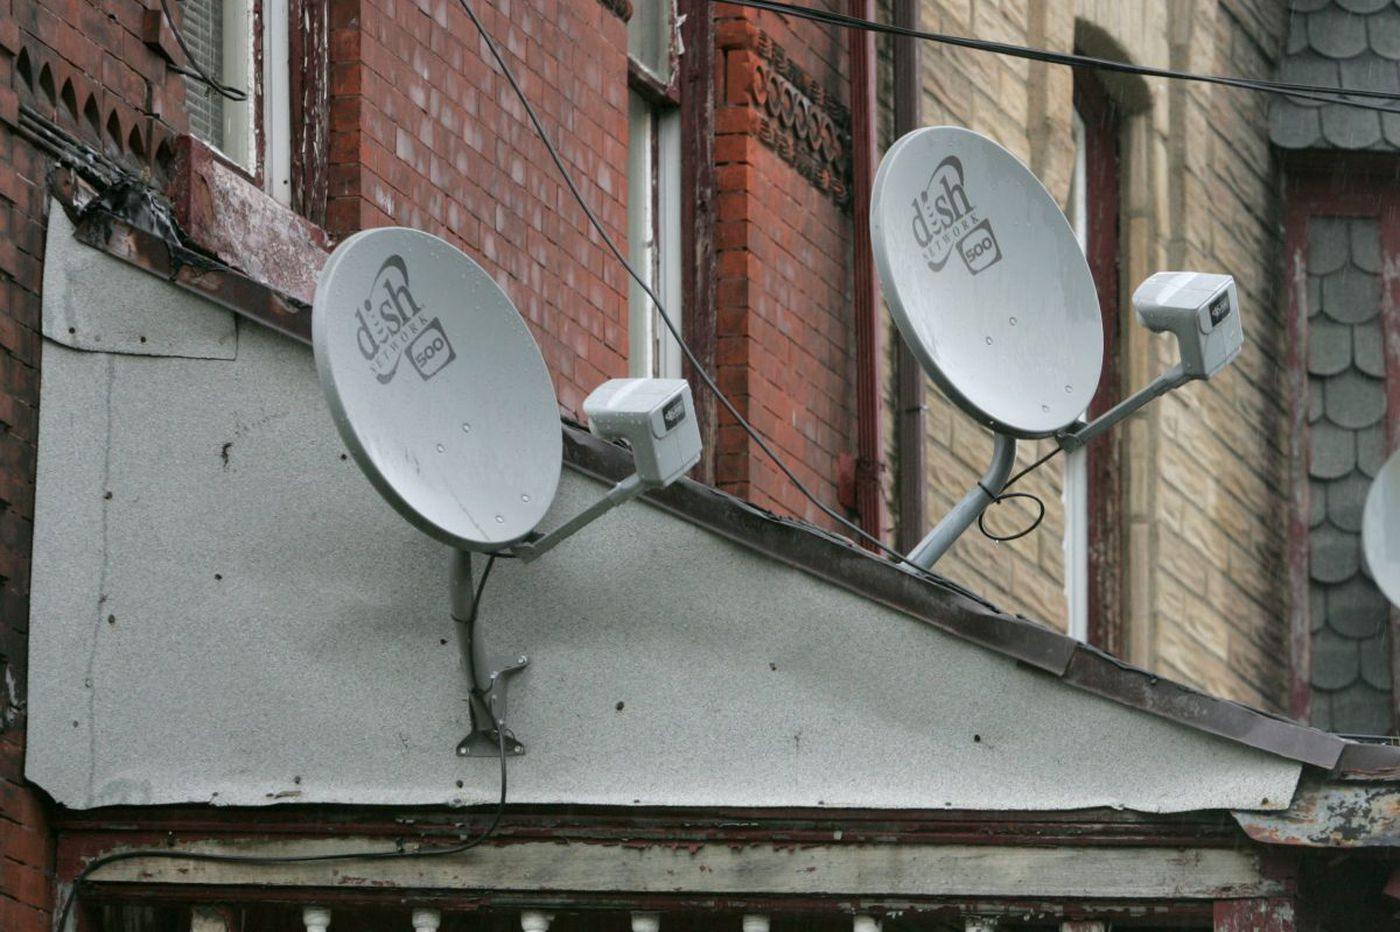 Why do people in poverty have satellite dishes?